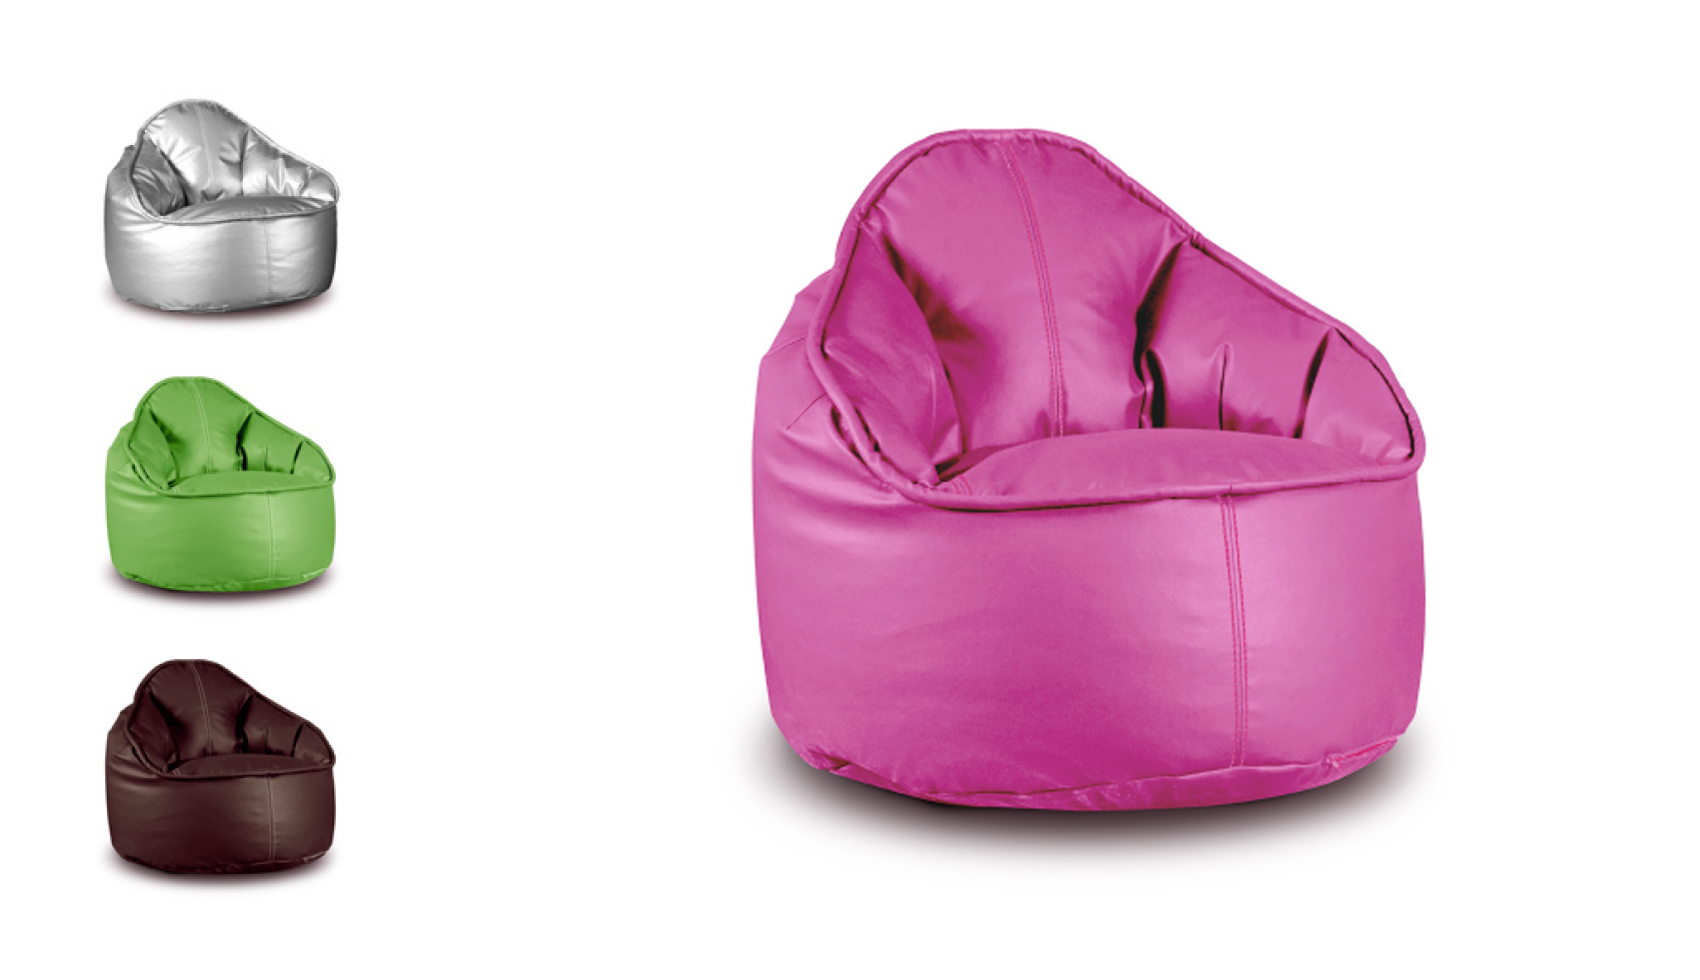 Puff confort online sill n - Puffs sillones ...